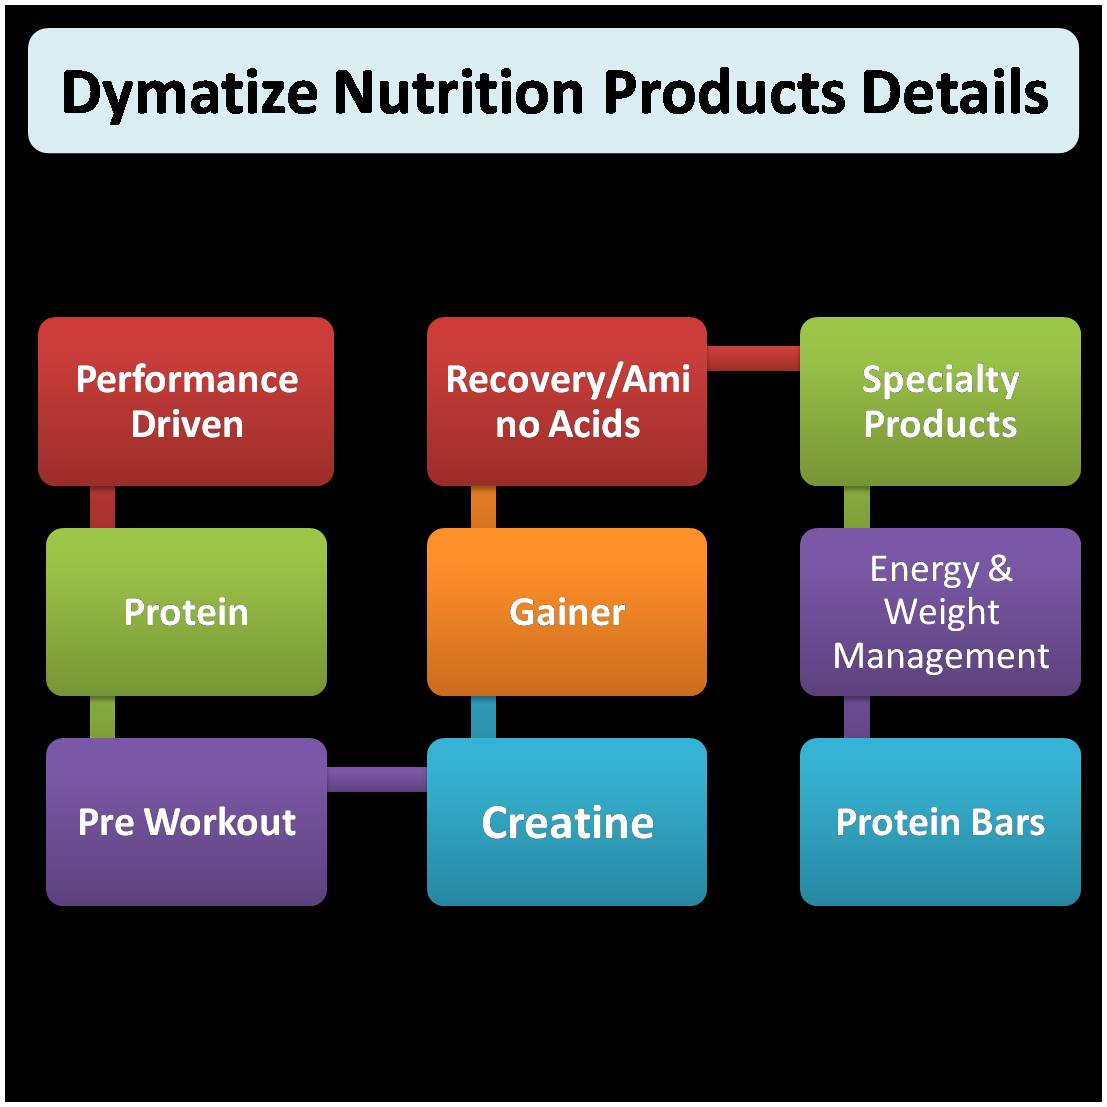 Dymatize Nutrition Products Details